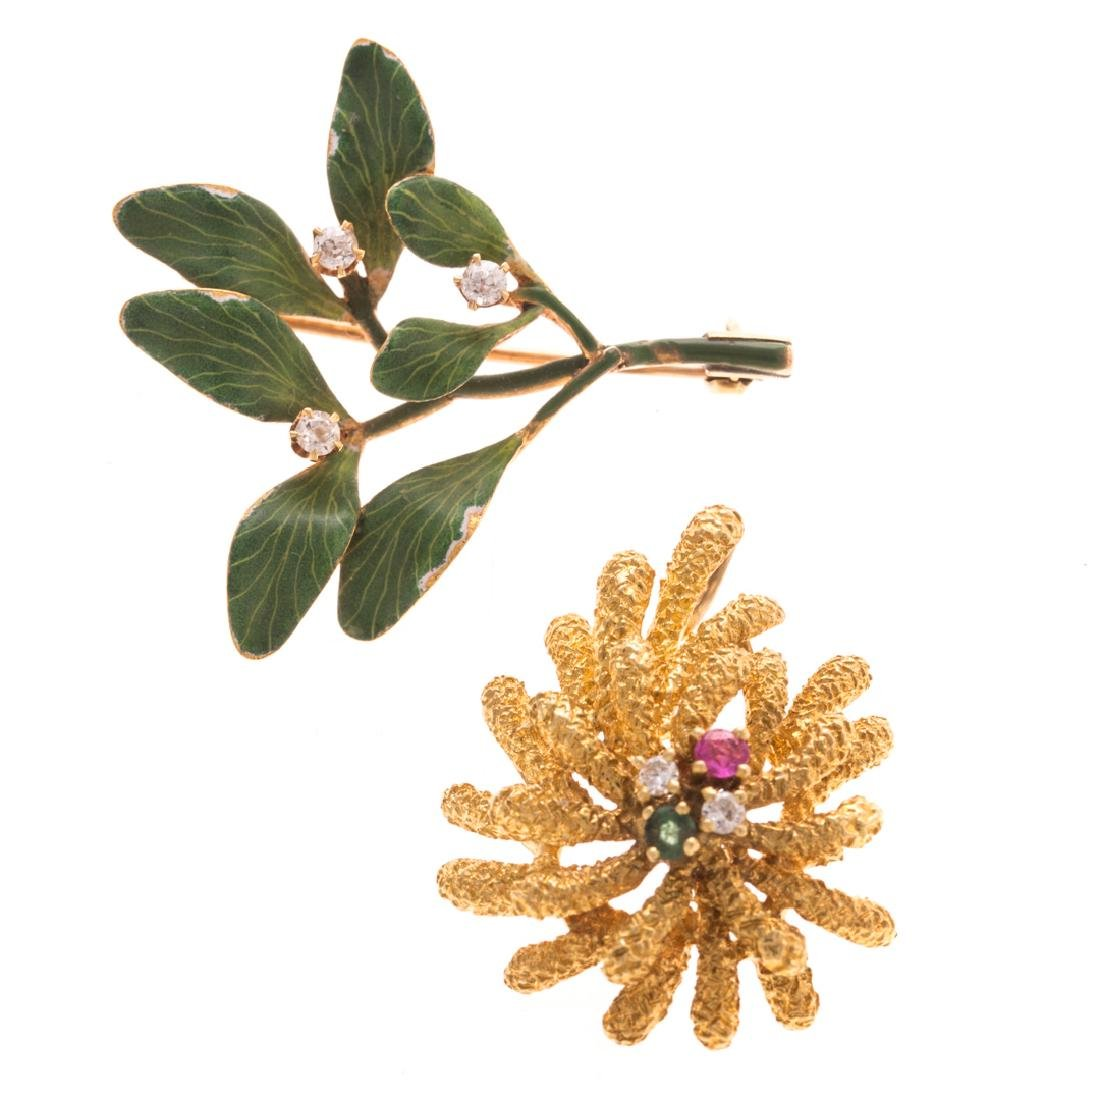 A Green Enamel Leaf Brooch & Gemstone Pendant